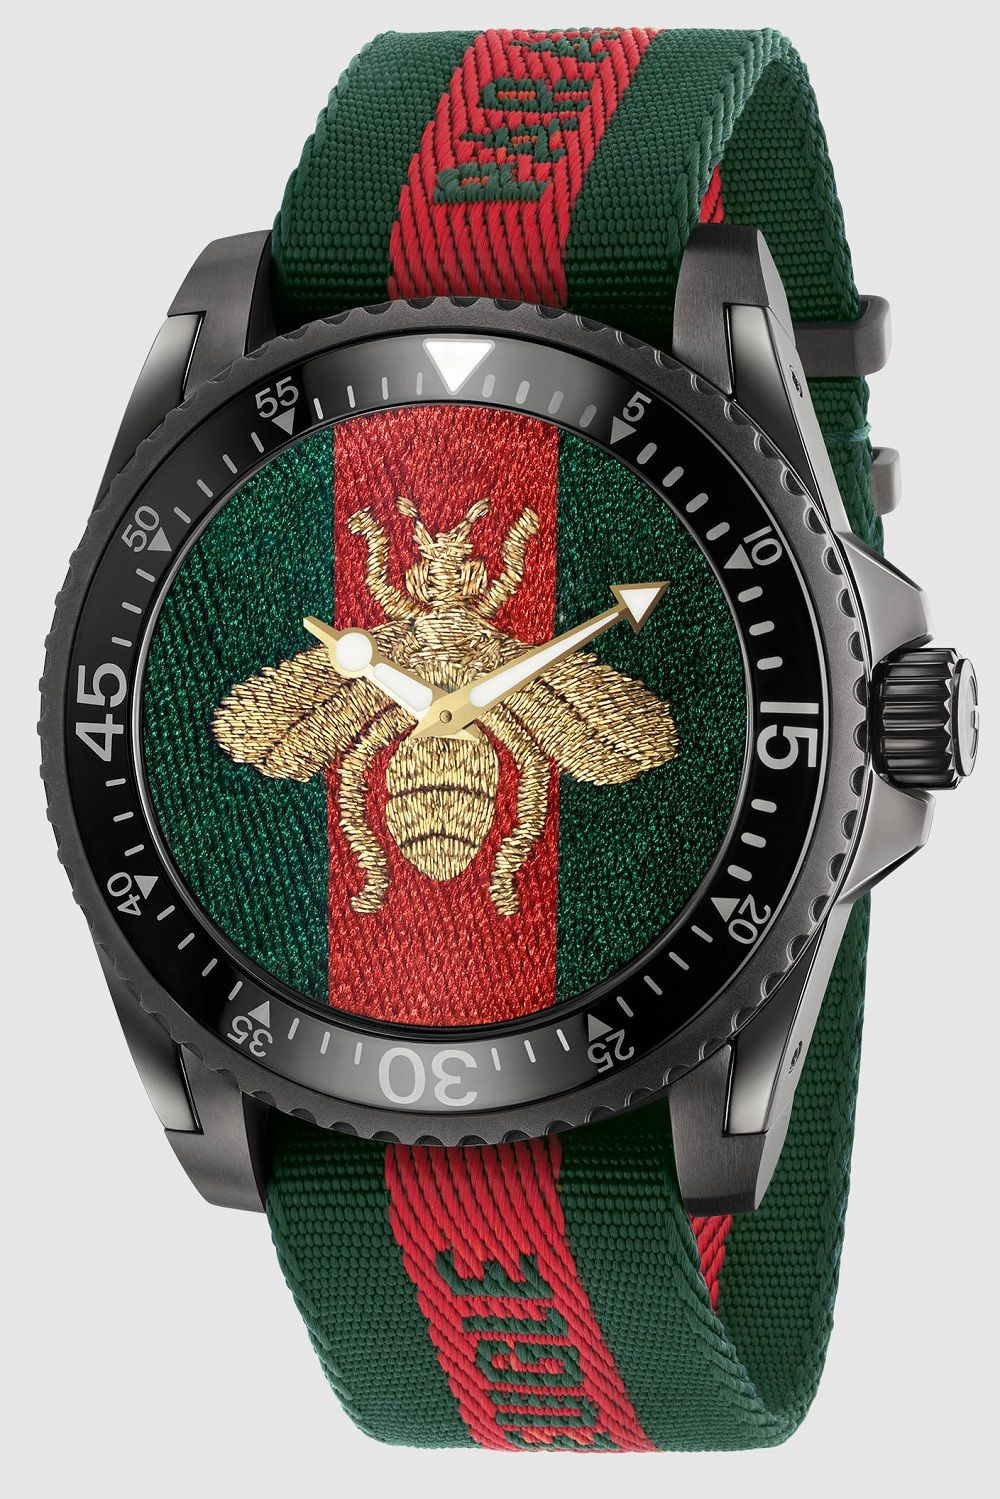 Gucci Dive Watches For 2017 With Embroidery & Rubber Animal Dials Watch Releases